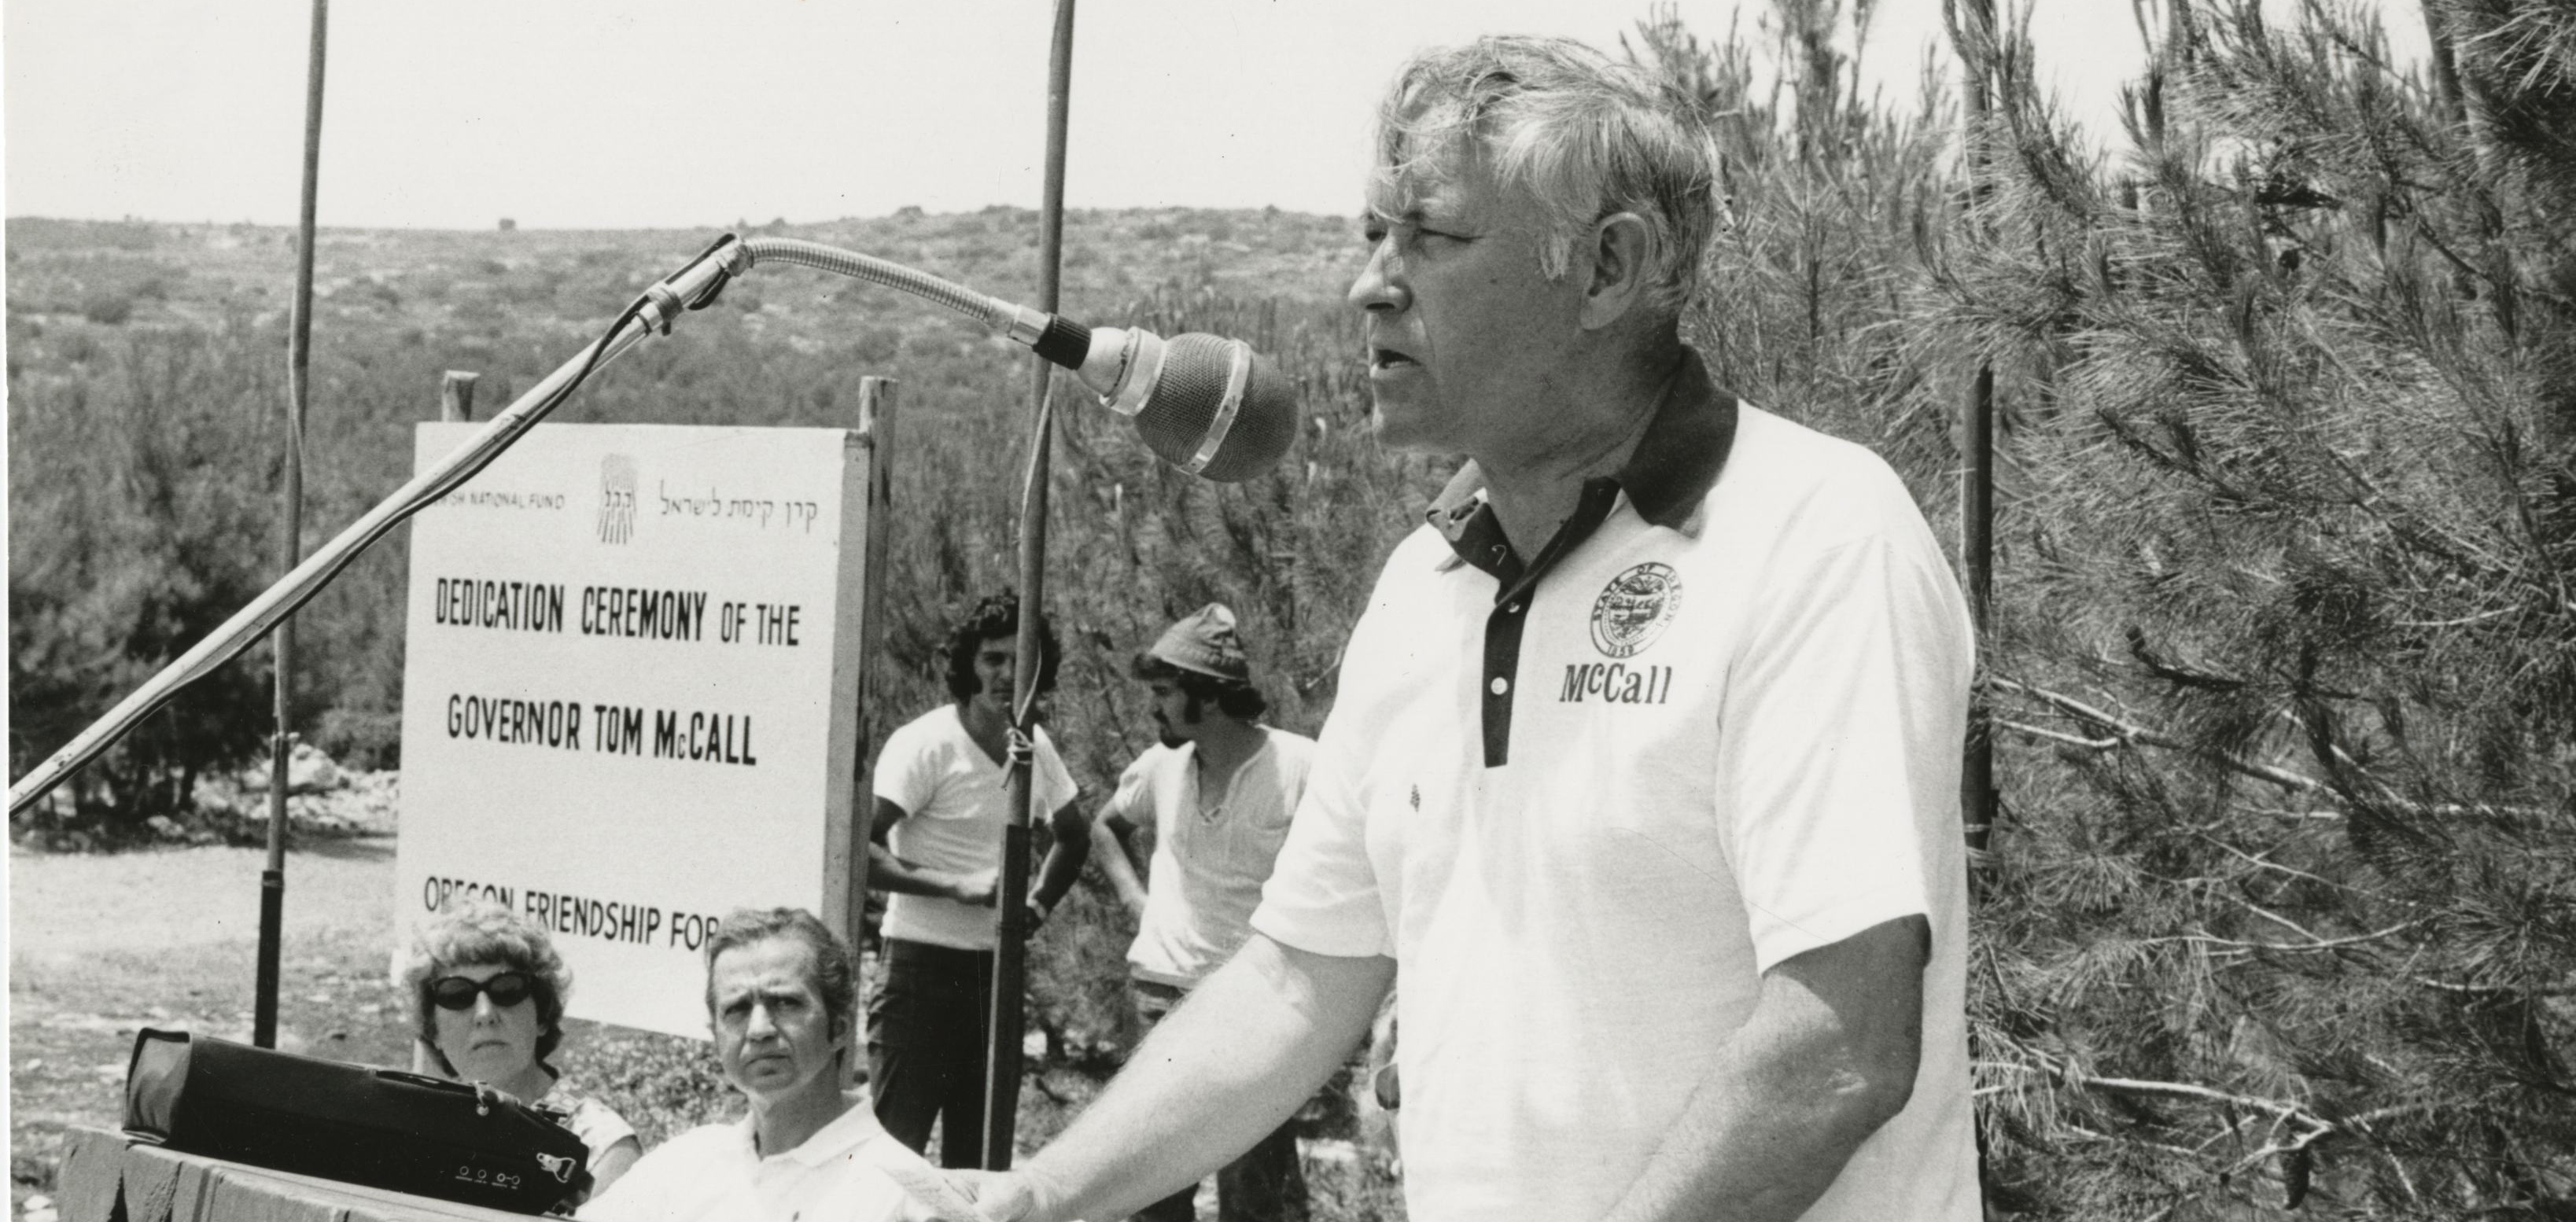 McCall dedicating the Oregon Friendship Forest in Israel, 1973